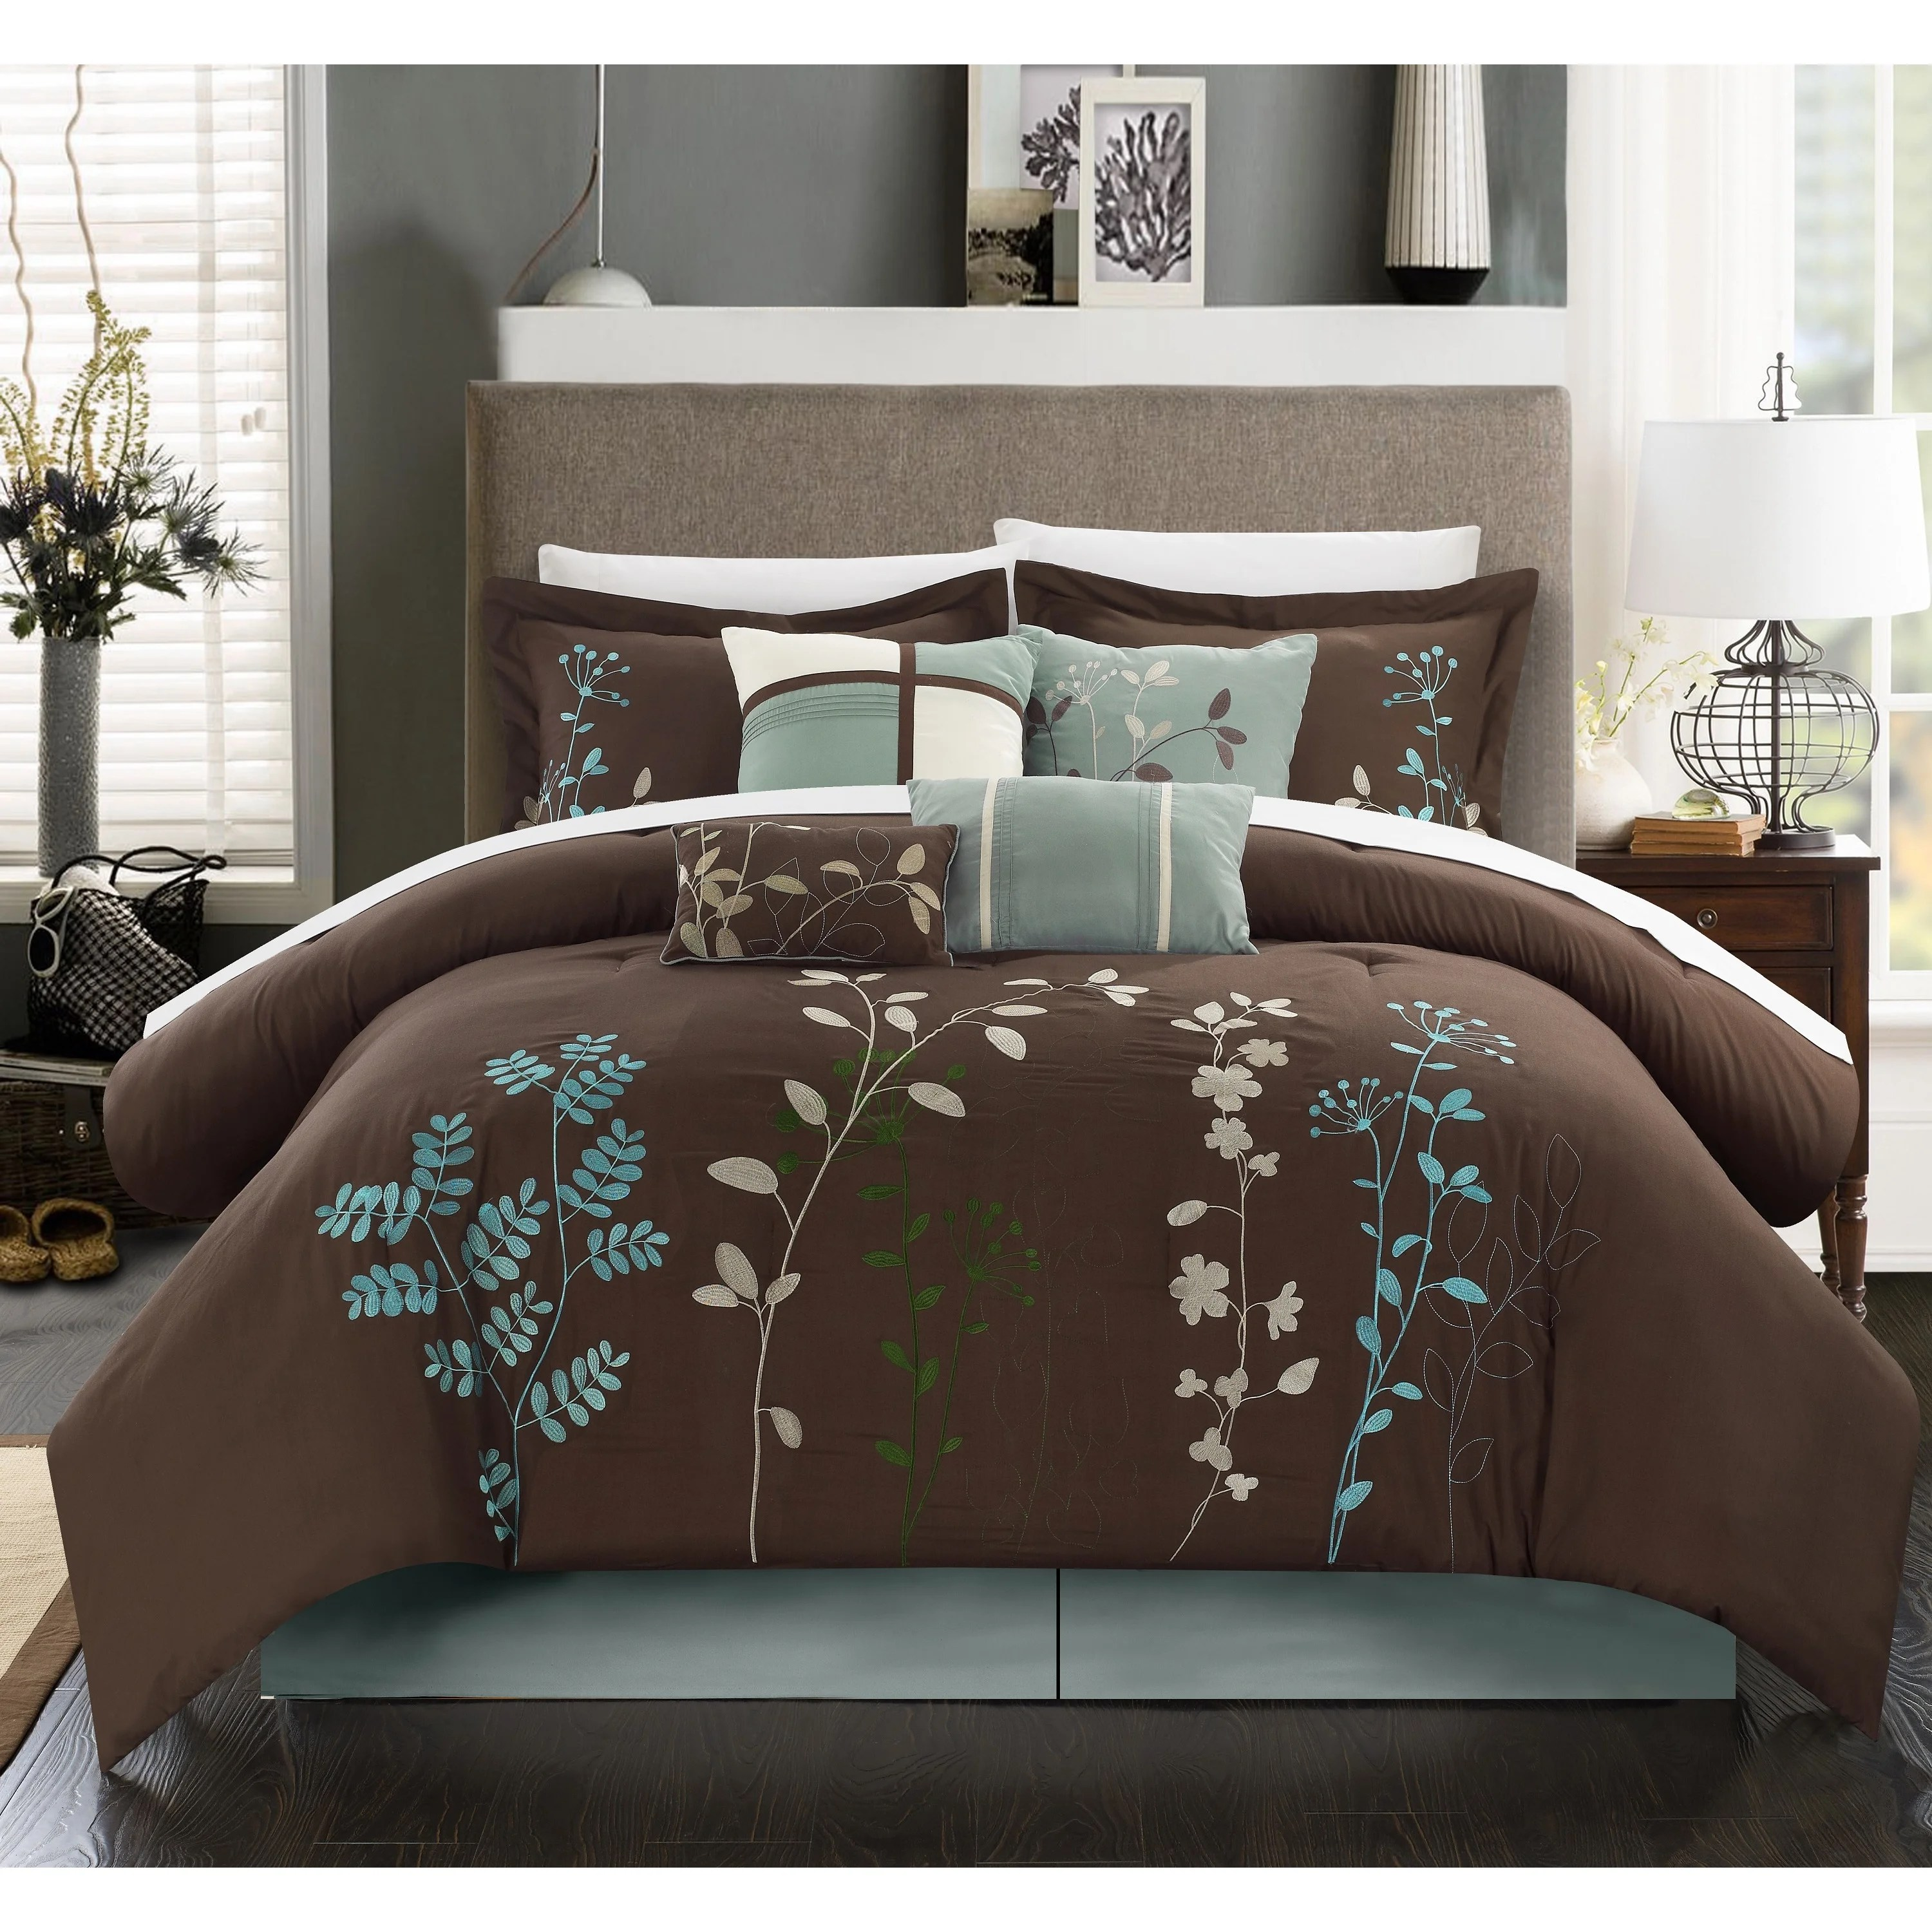 Shop Bliss Garden Chocolate Brown 12 Piece Bed In A Bag